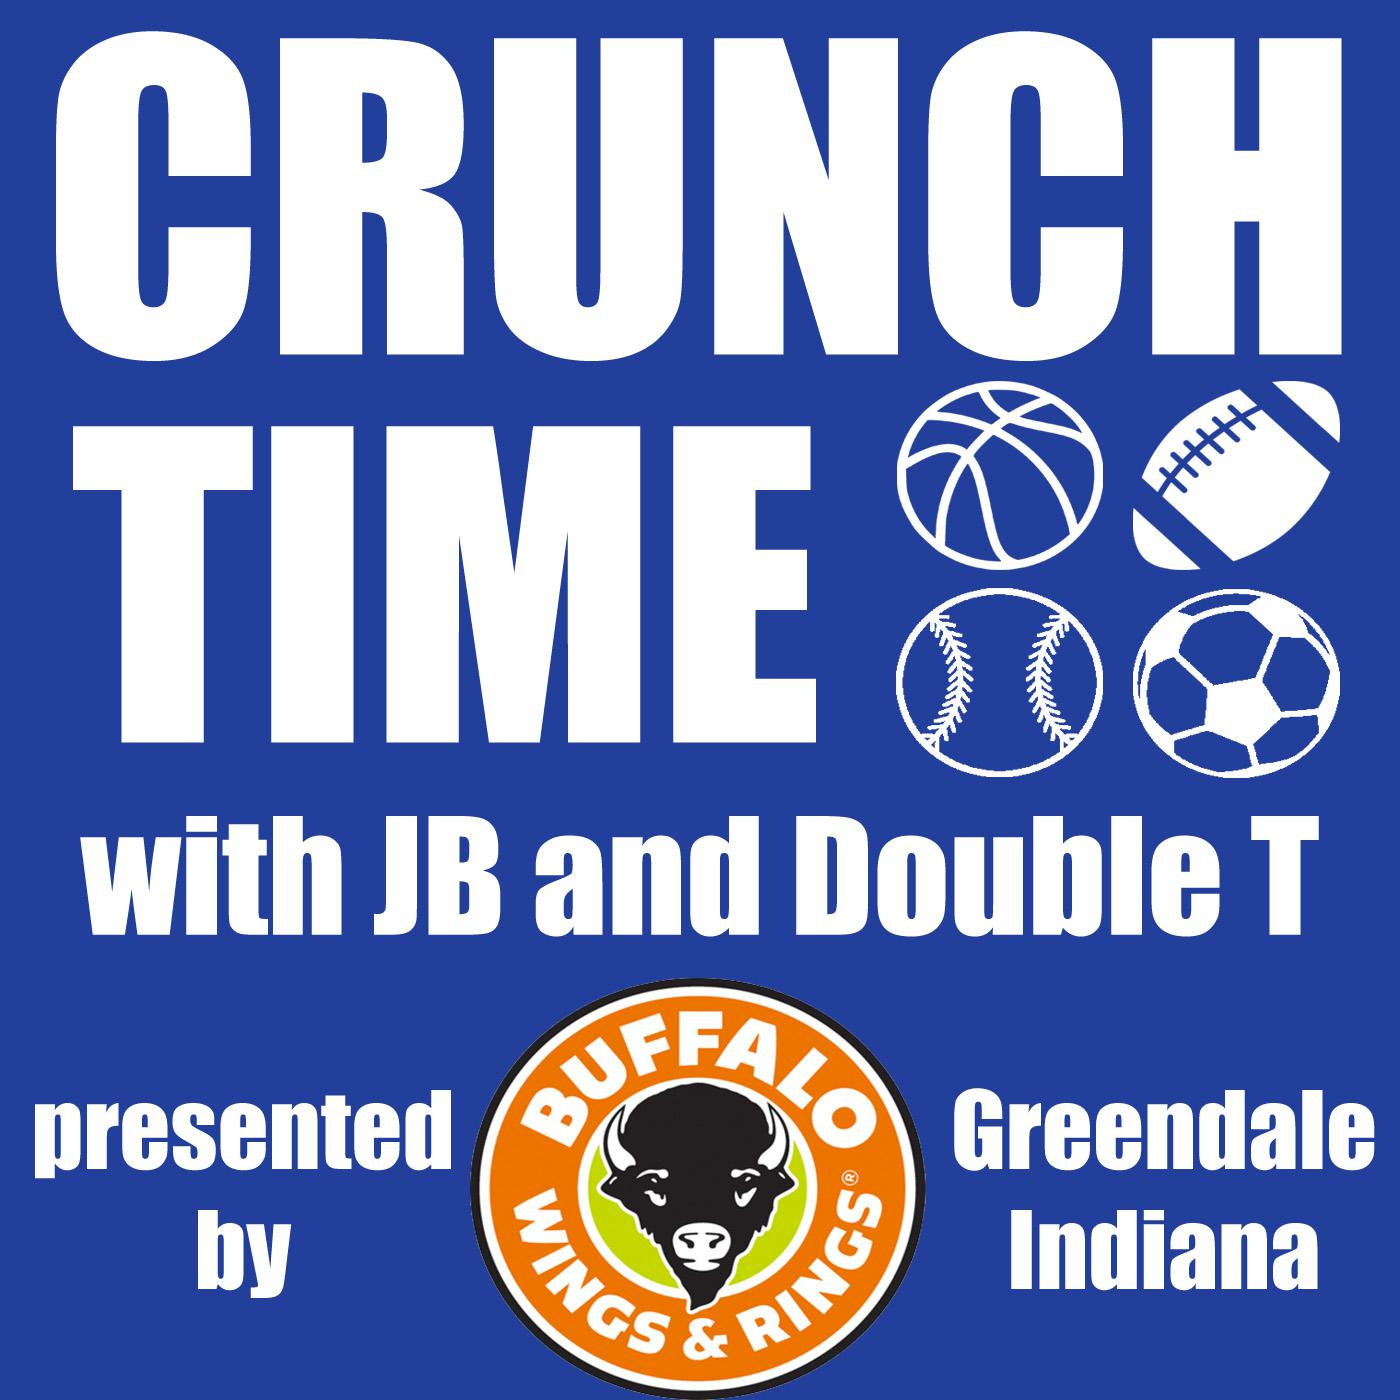 Crunch Time presented by Buffalo Wings & Rings Greendale